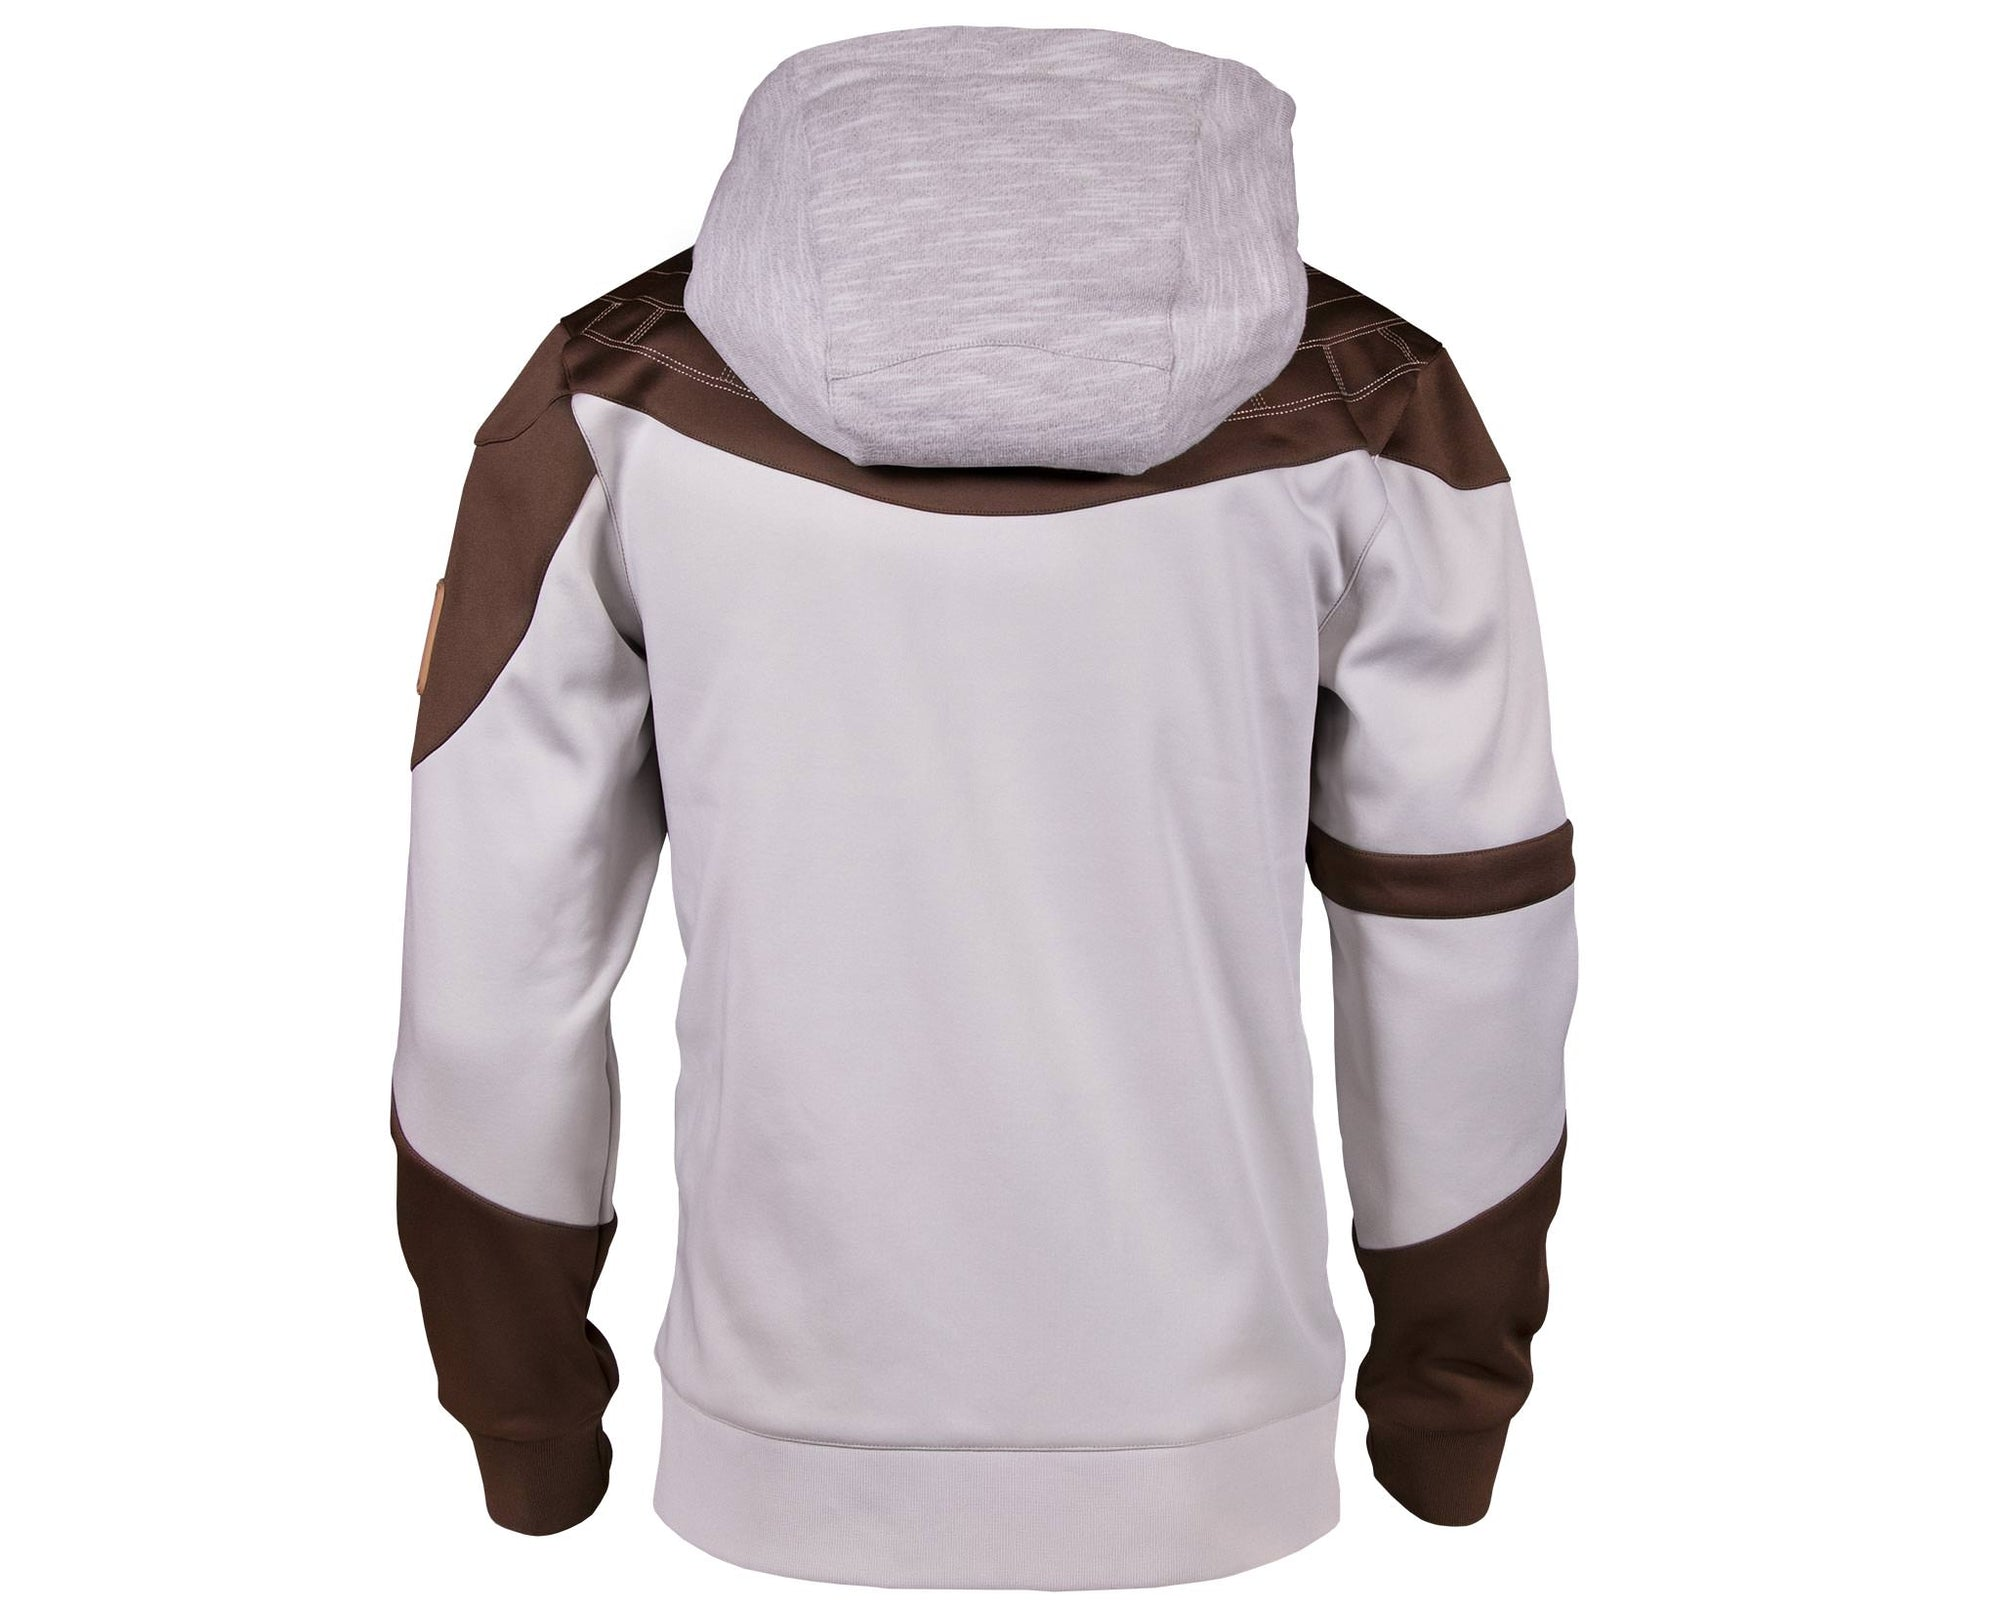 Assassin's Creed Origins Bayek Hoodie Unisex Official Ubisoft Collection - White